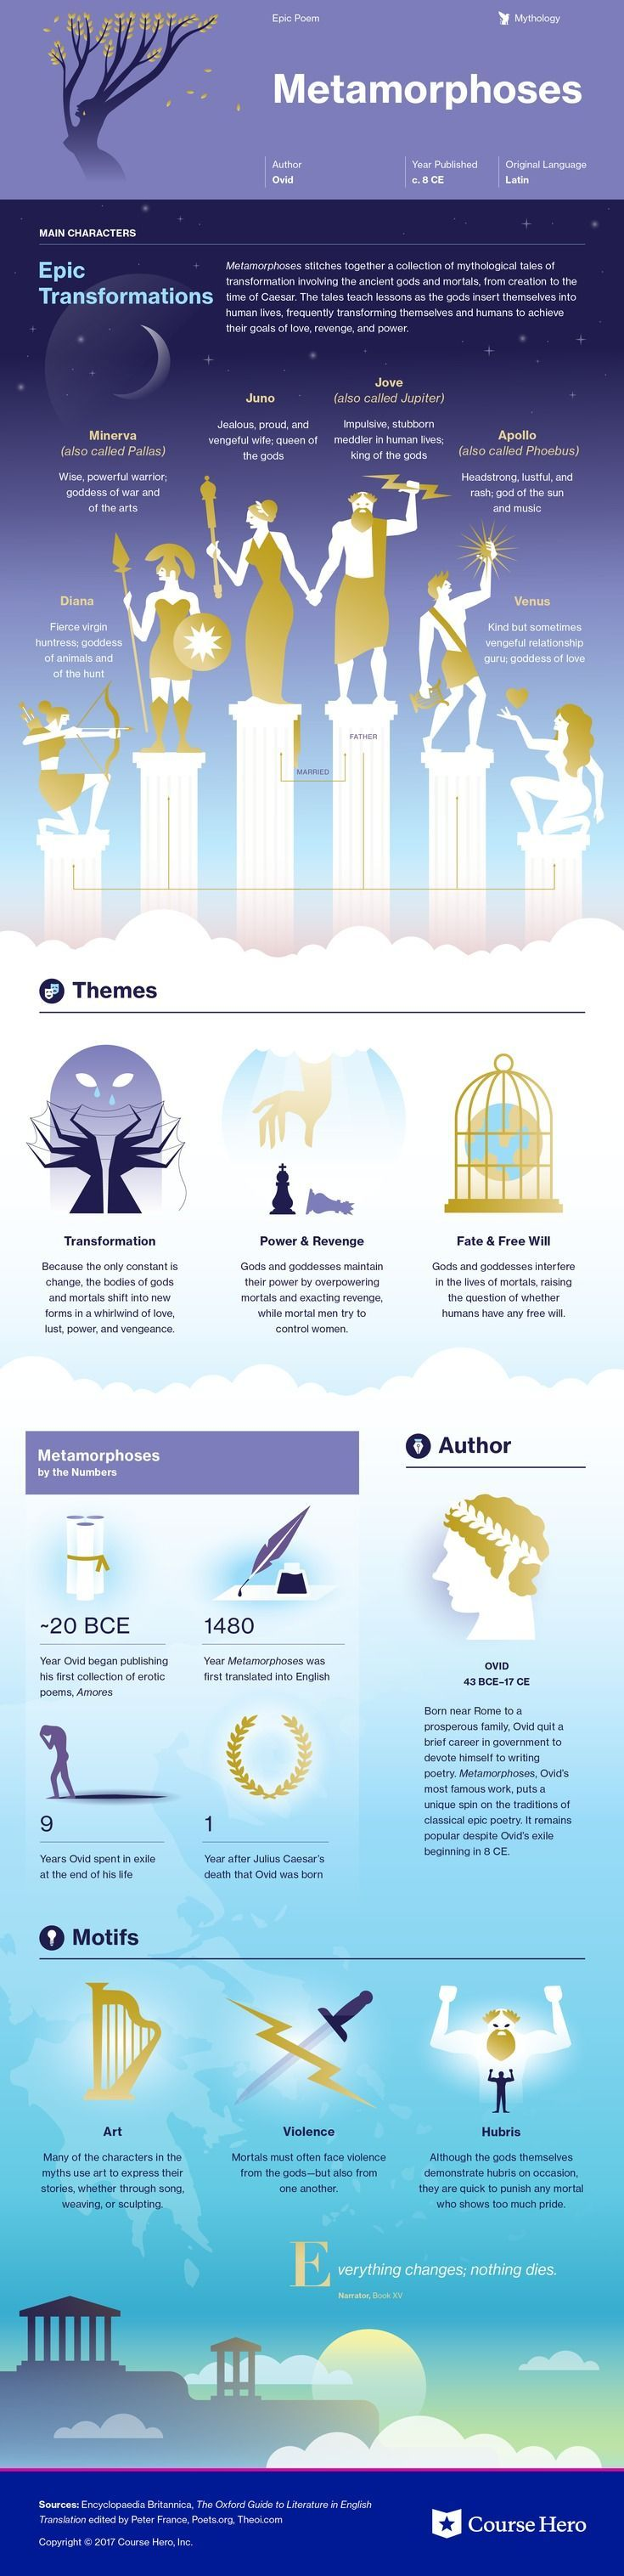 This @CourseHero infographic on Metamorphoses is both visually stunning and informative!